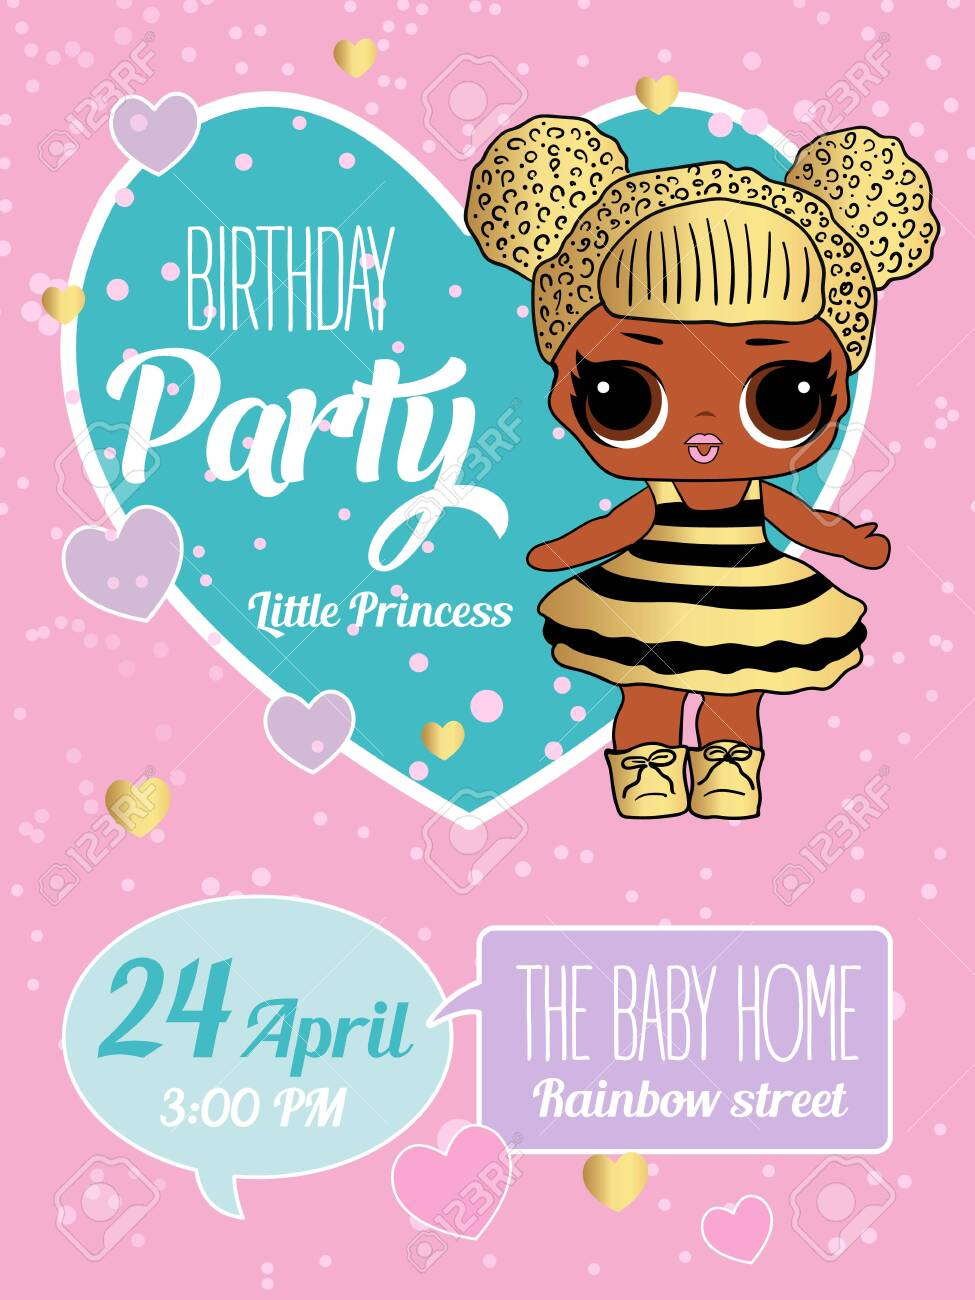 Birthday Invitation With Cute Lol Dolls Element Of Design For